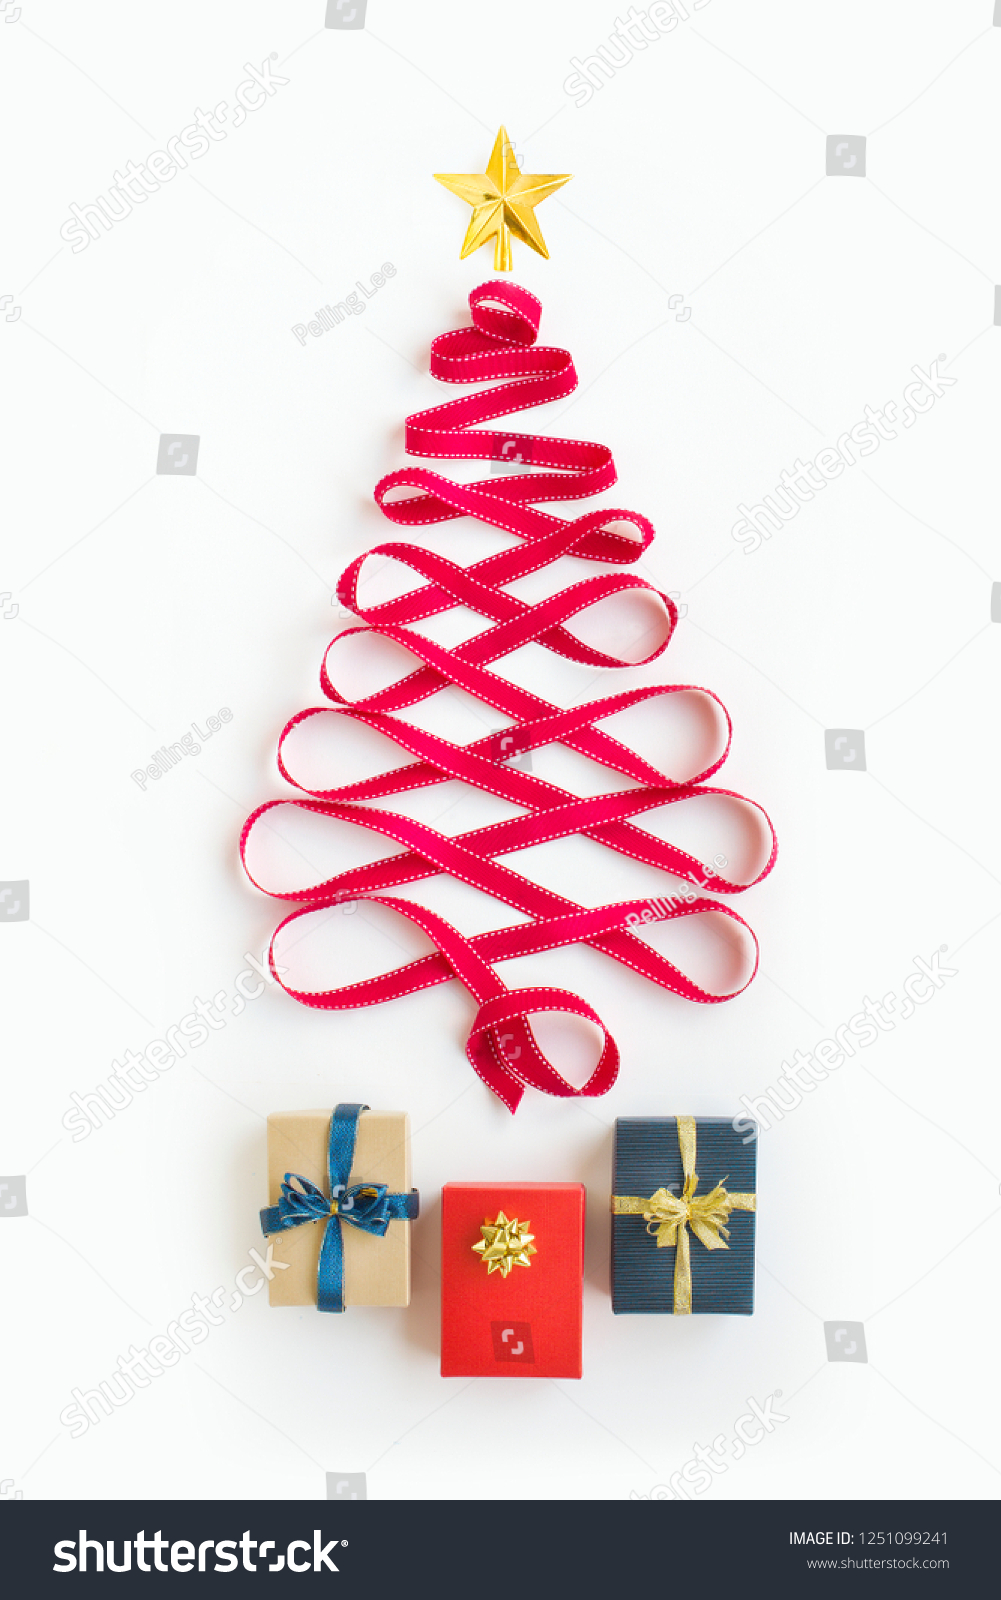 Flat Lay Conceptual Minimalist Christmas Tree Stock Photo Edit Now 1251099241